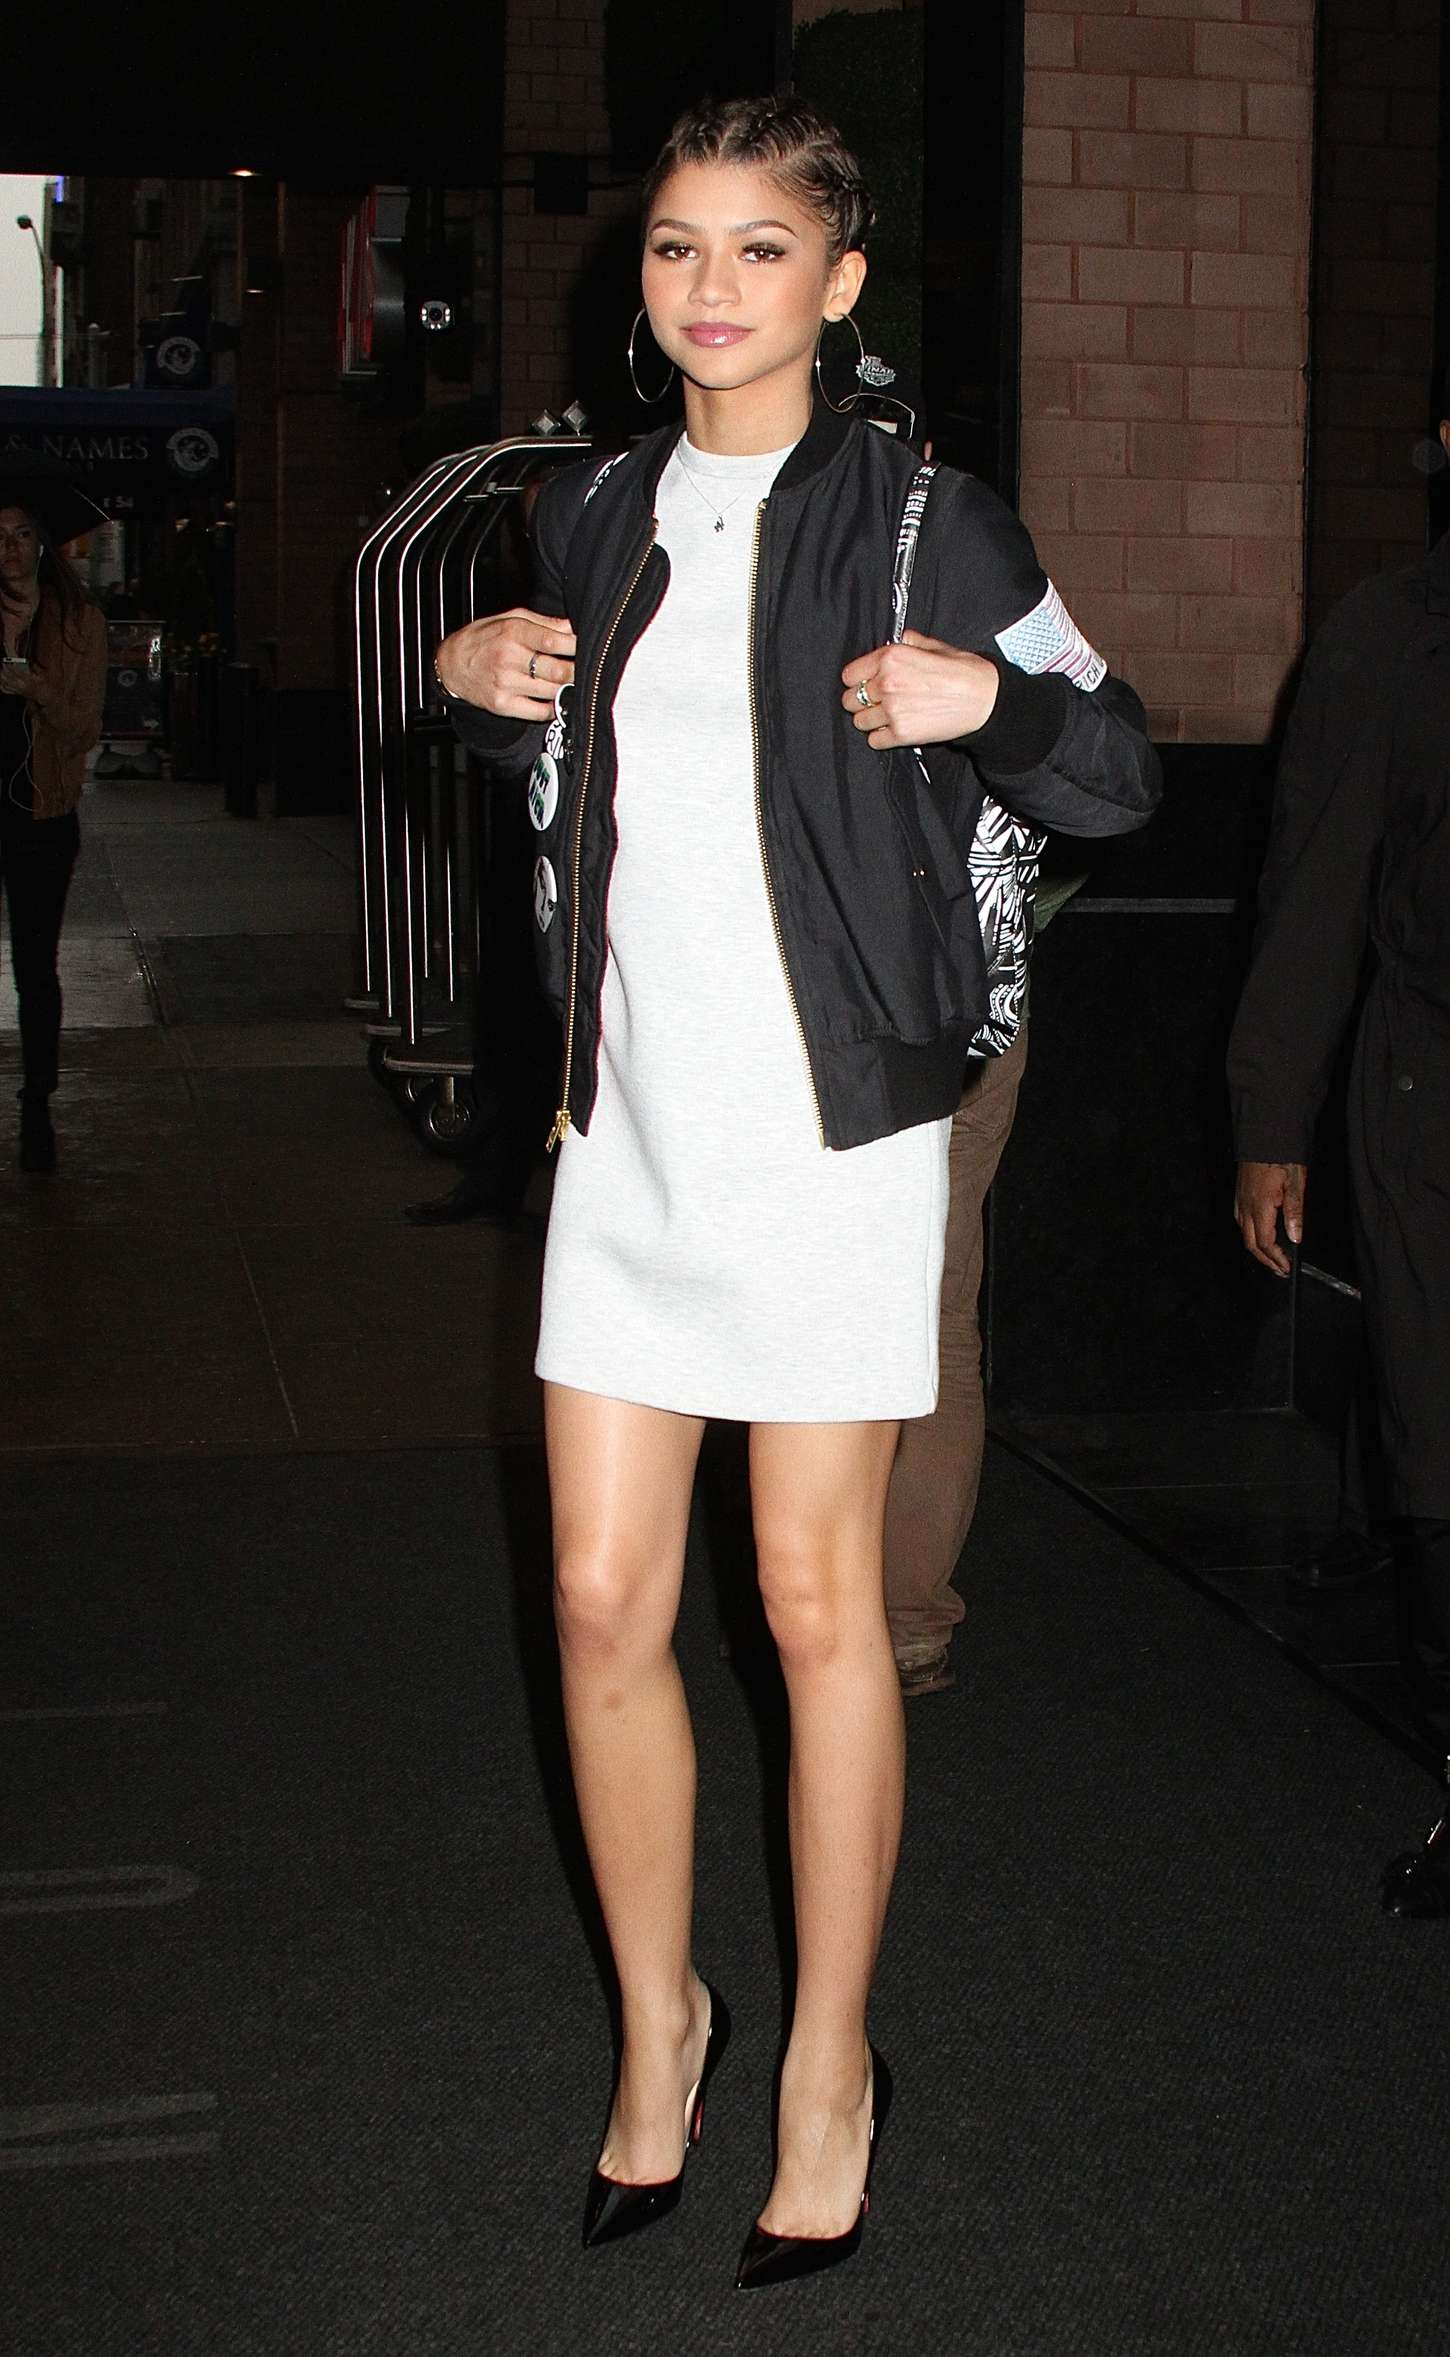 Zendaya In White Mini Dress Leaving Her Hotel In Nyc